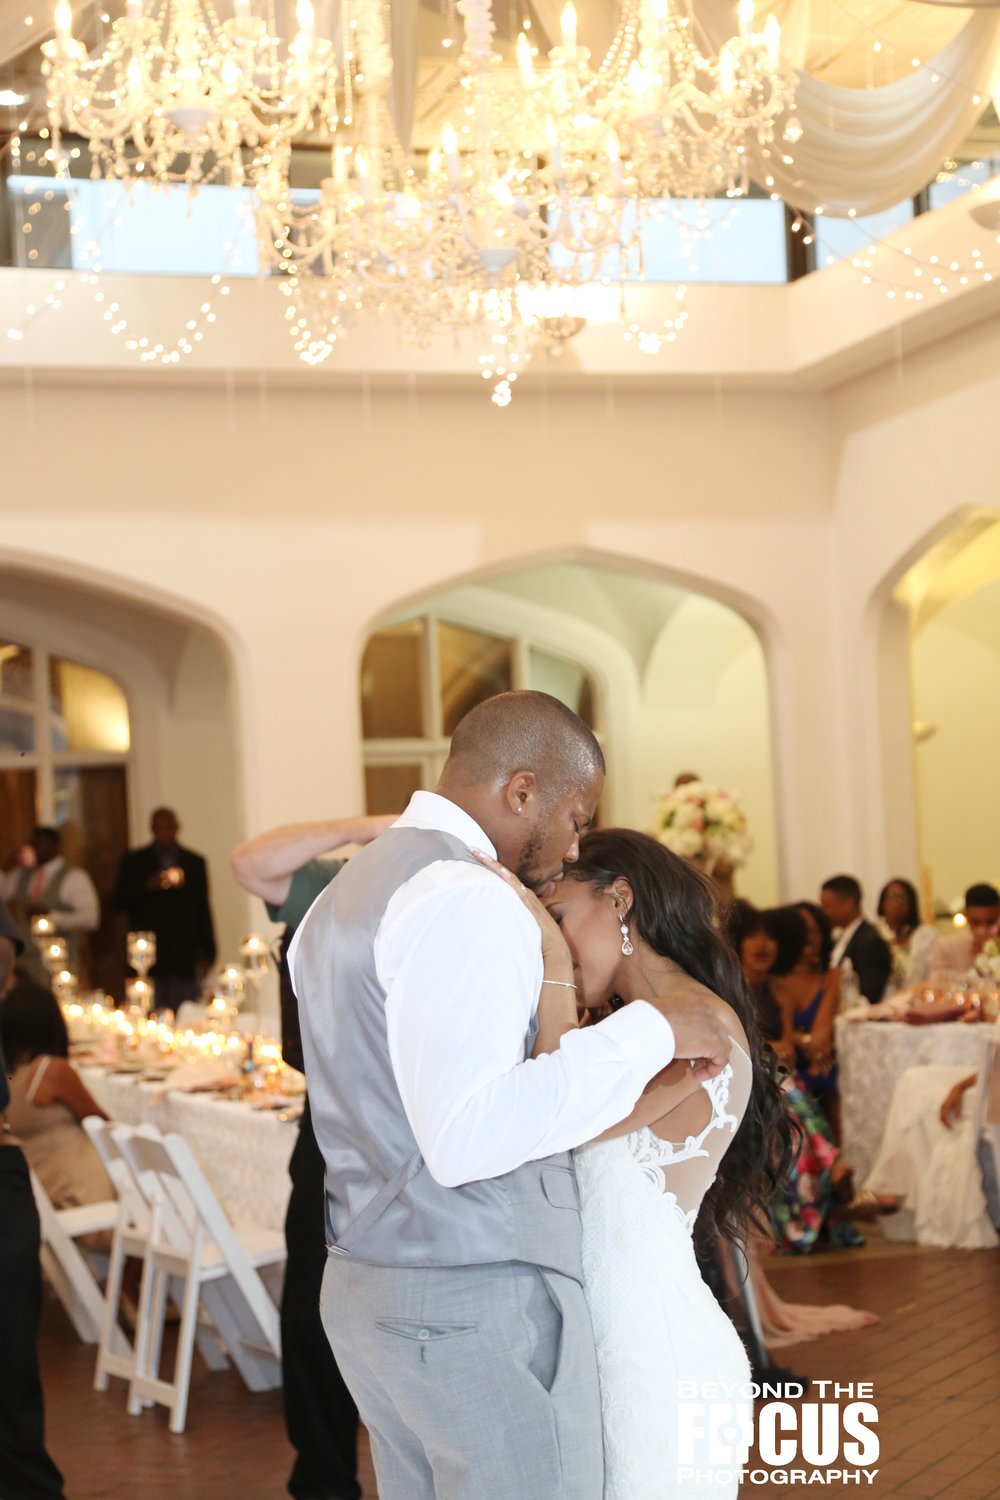 Christan_Imani_WeddingReception_W_109.jpg